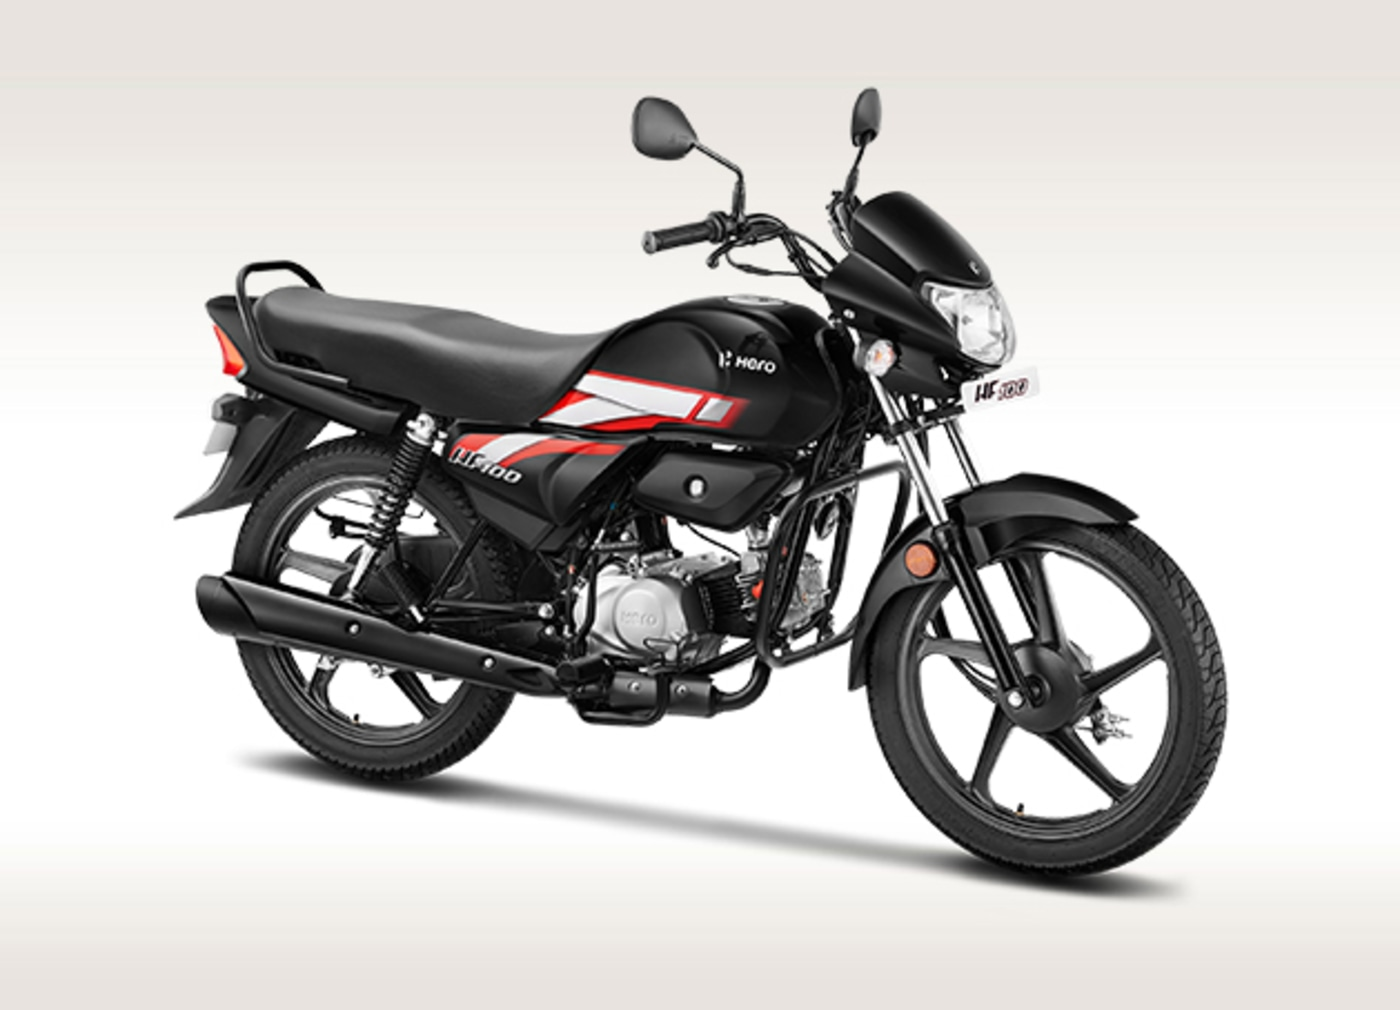 HF 100 Hero Launched At Rs.  49,400 – Most Affordable Hero Bike